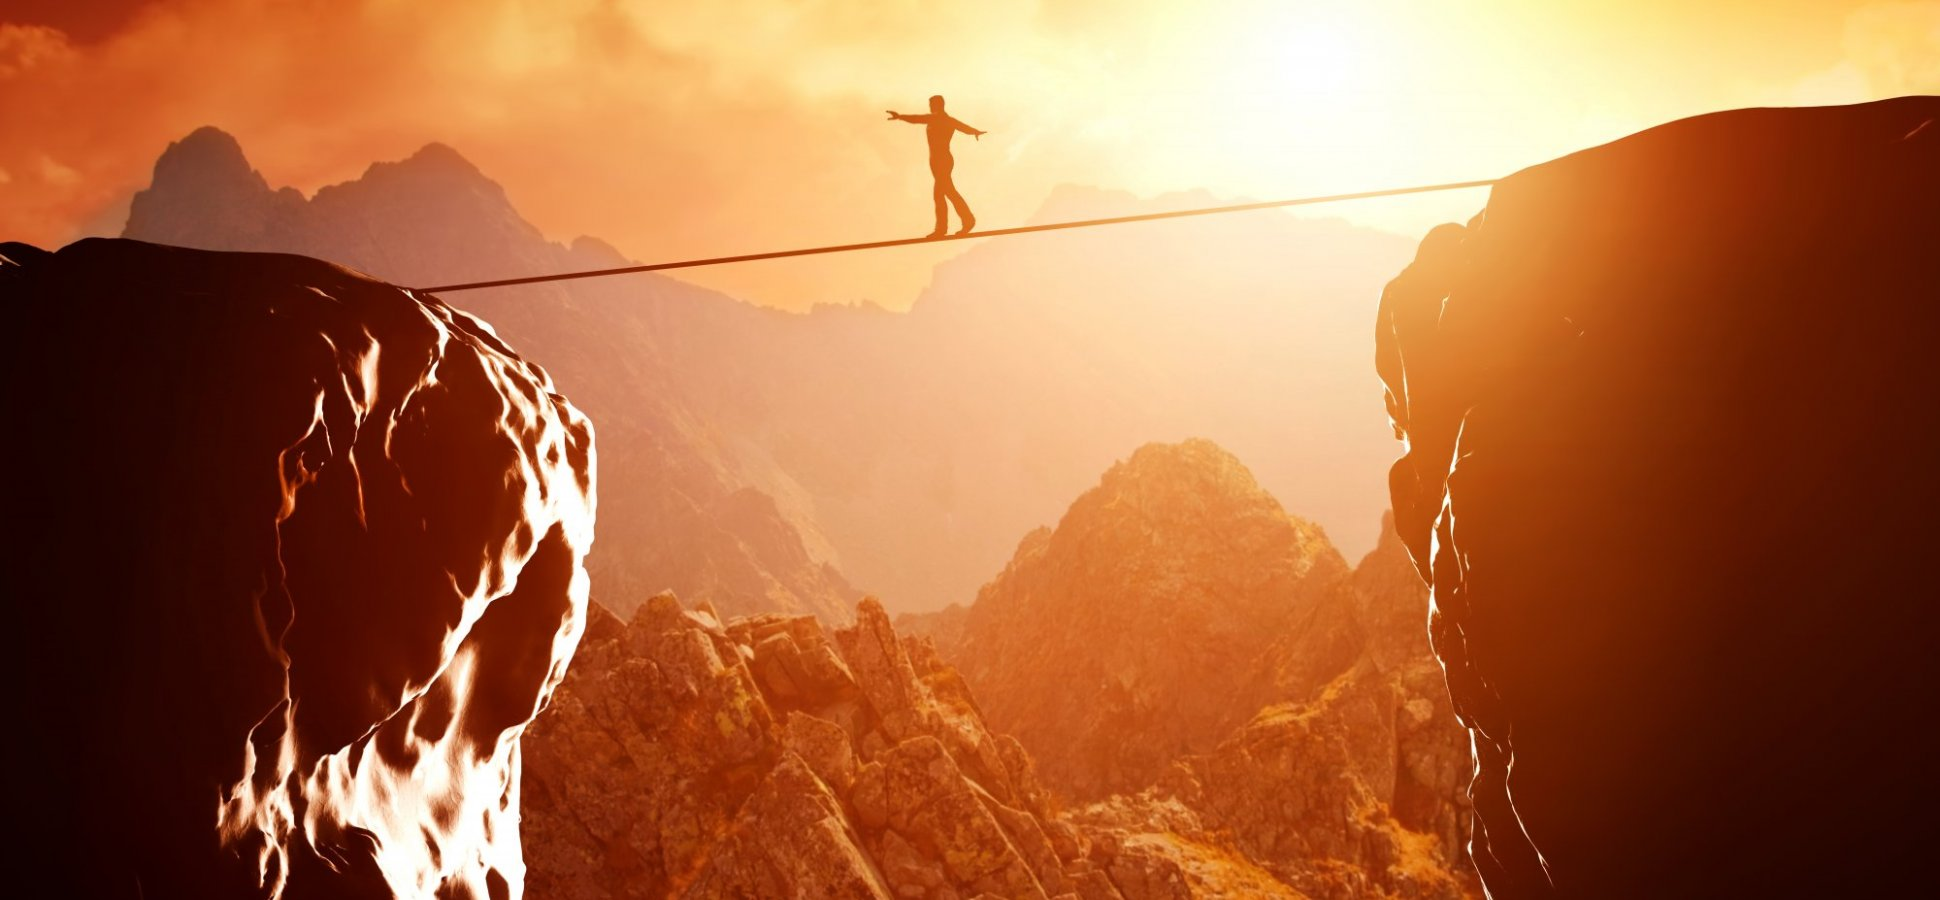 5 Wildly Successful Entrepreneurs Reveal How Risk-Taking Propelled Their Careers | Inc.com